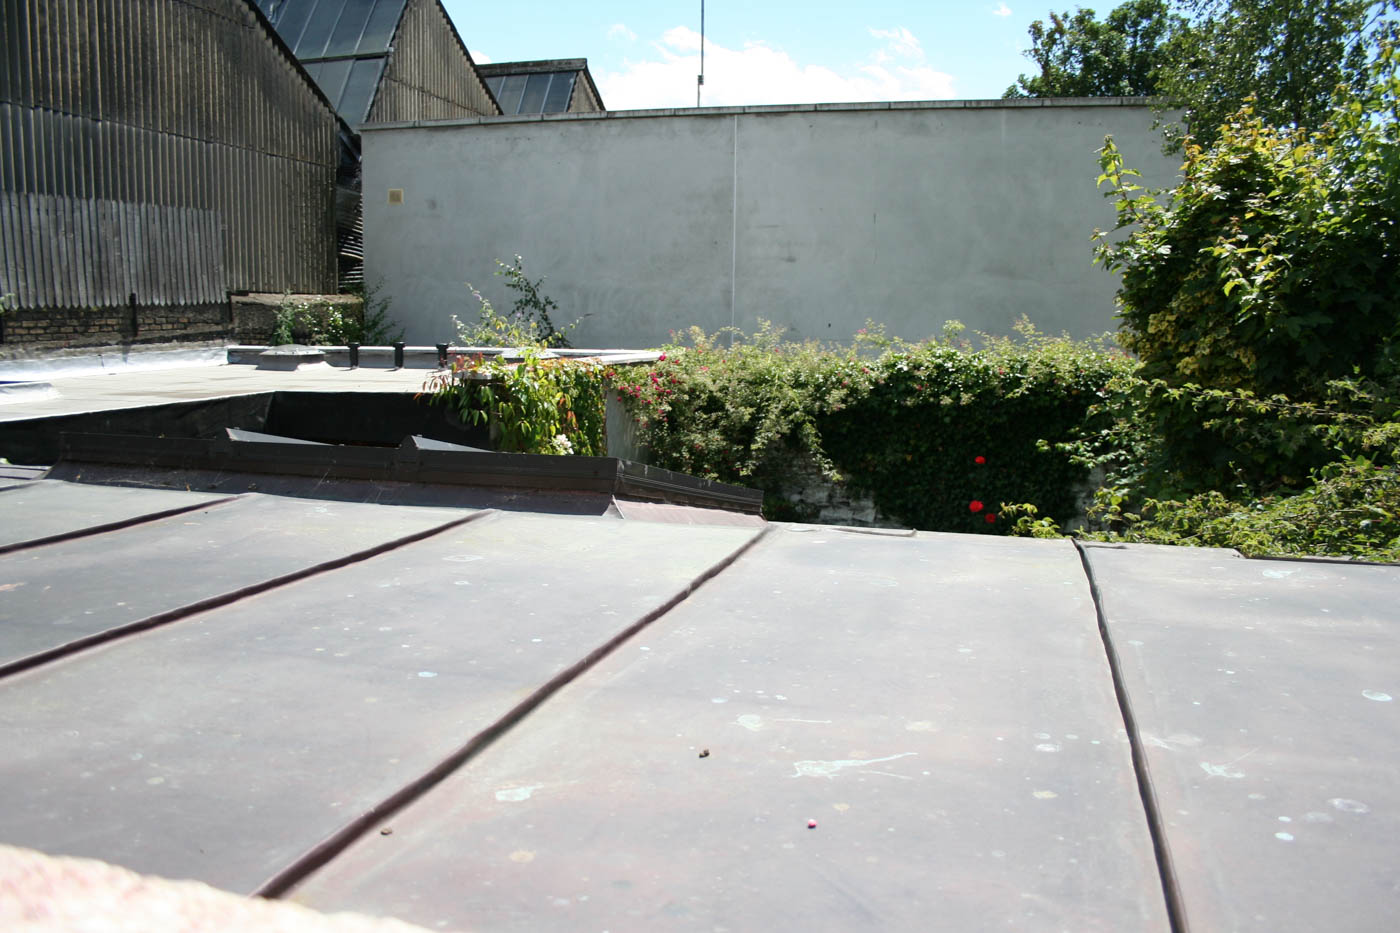 18-17 roofs